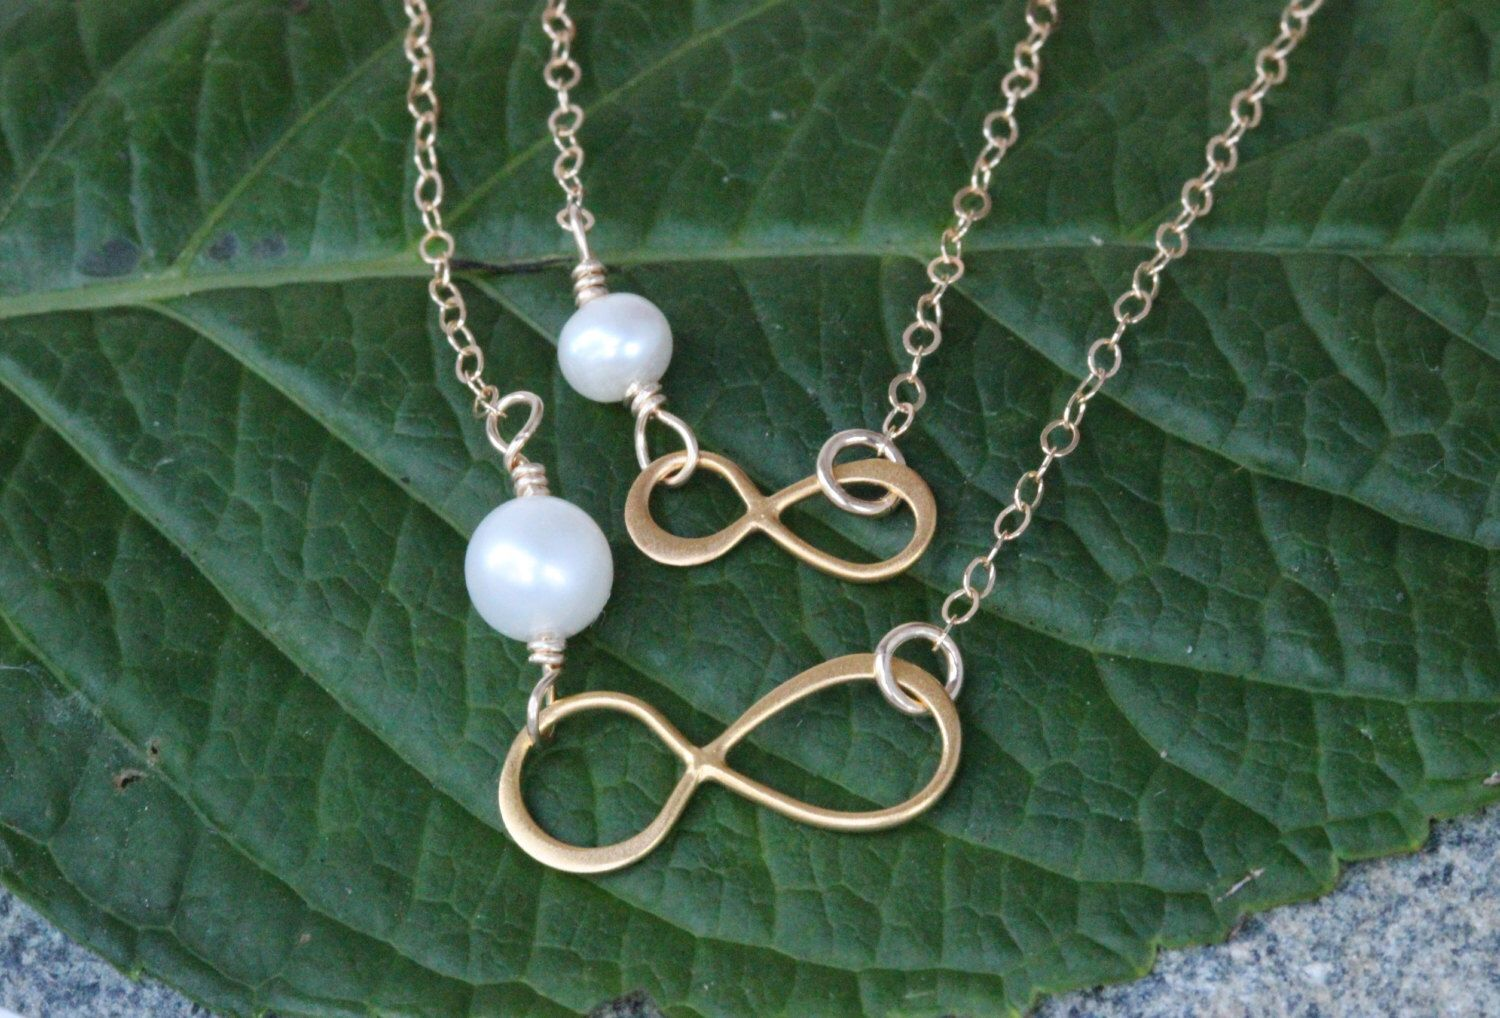 il gold fullxfull necklace daughter infinity mothers mother set listing heart jewelry